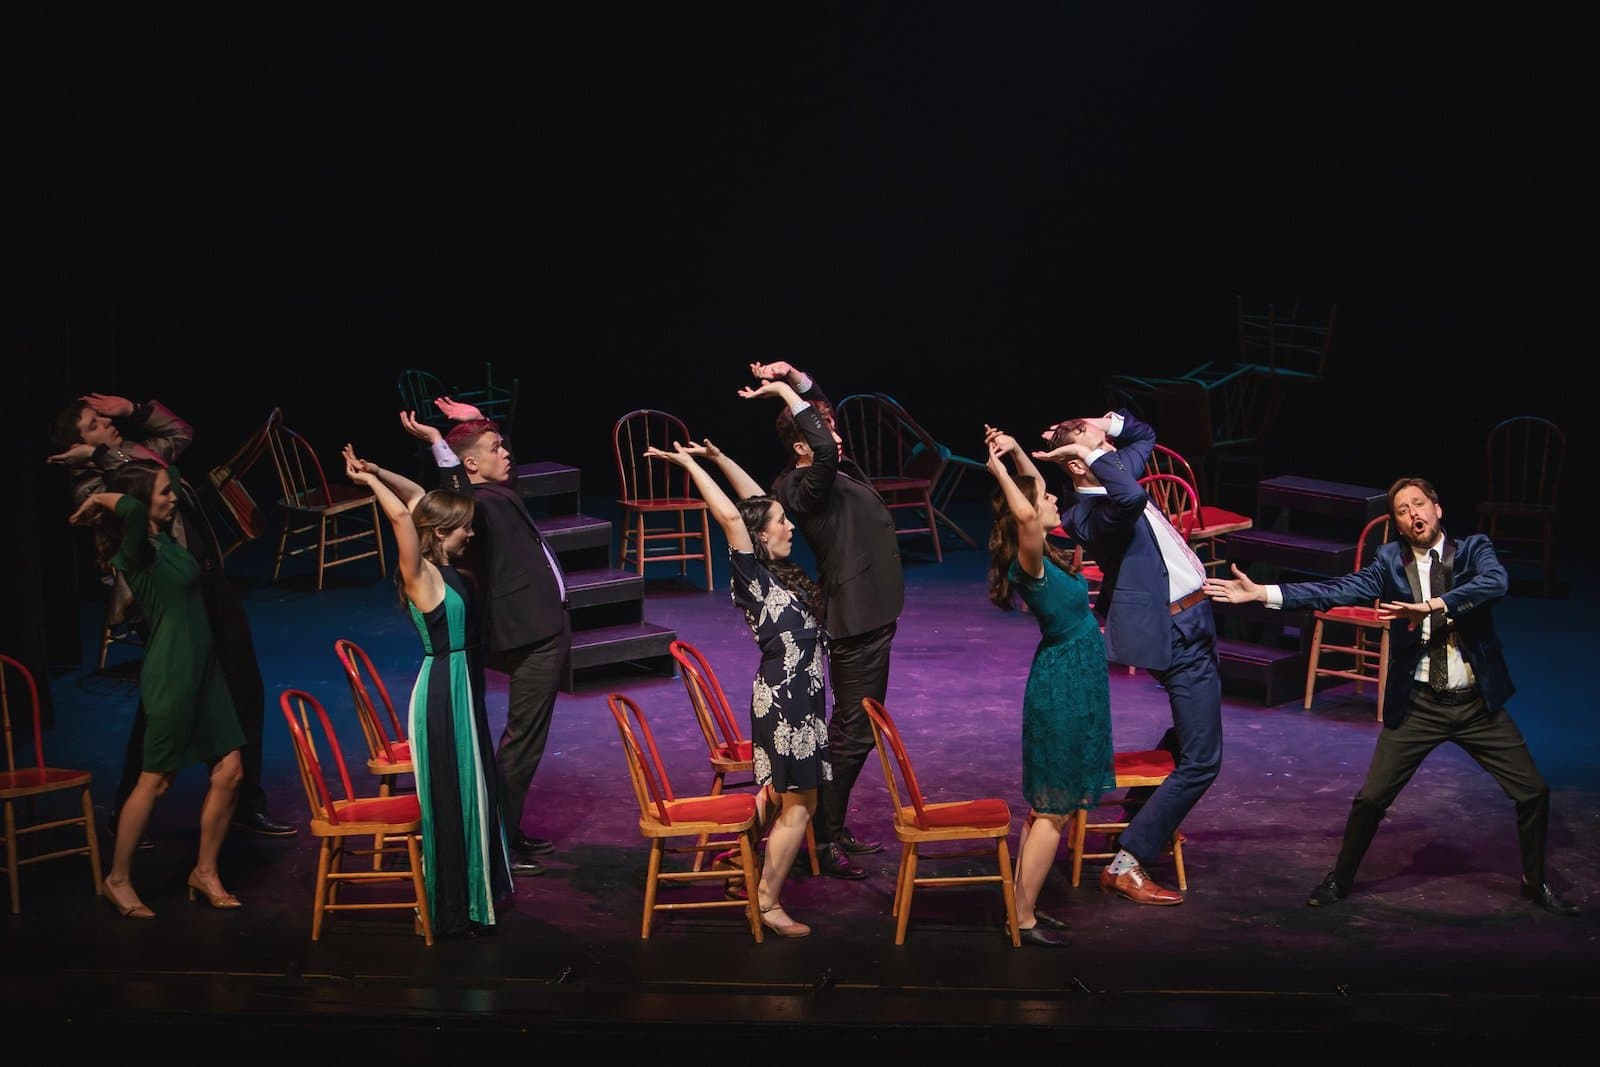 Image of performers at Central City Opera in Colorado